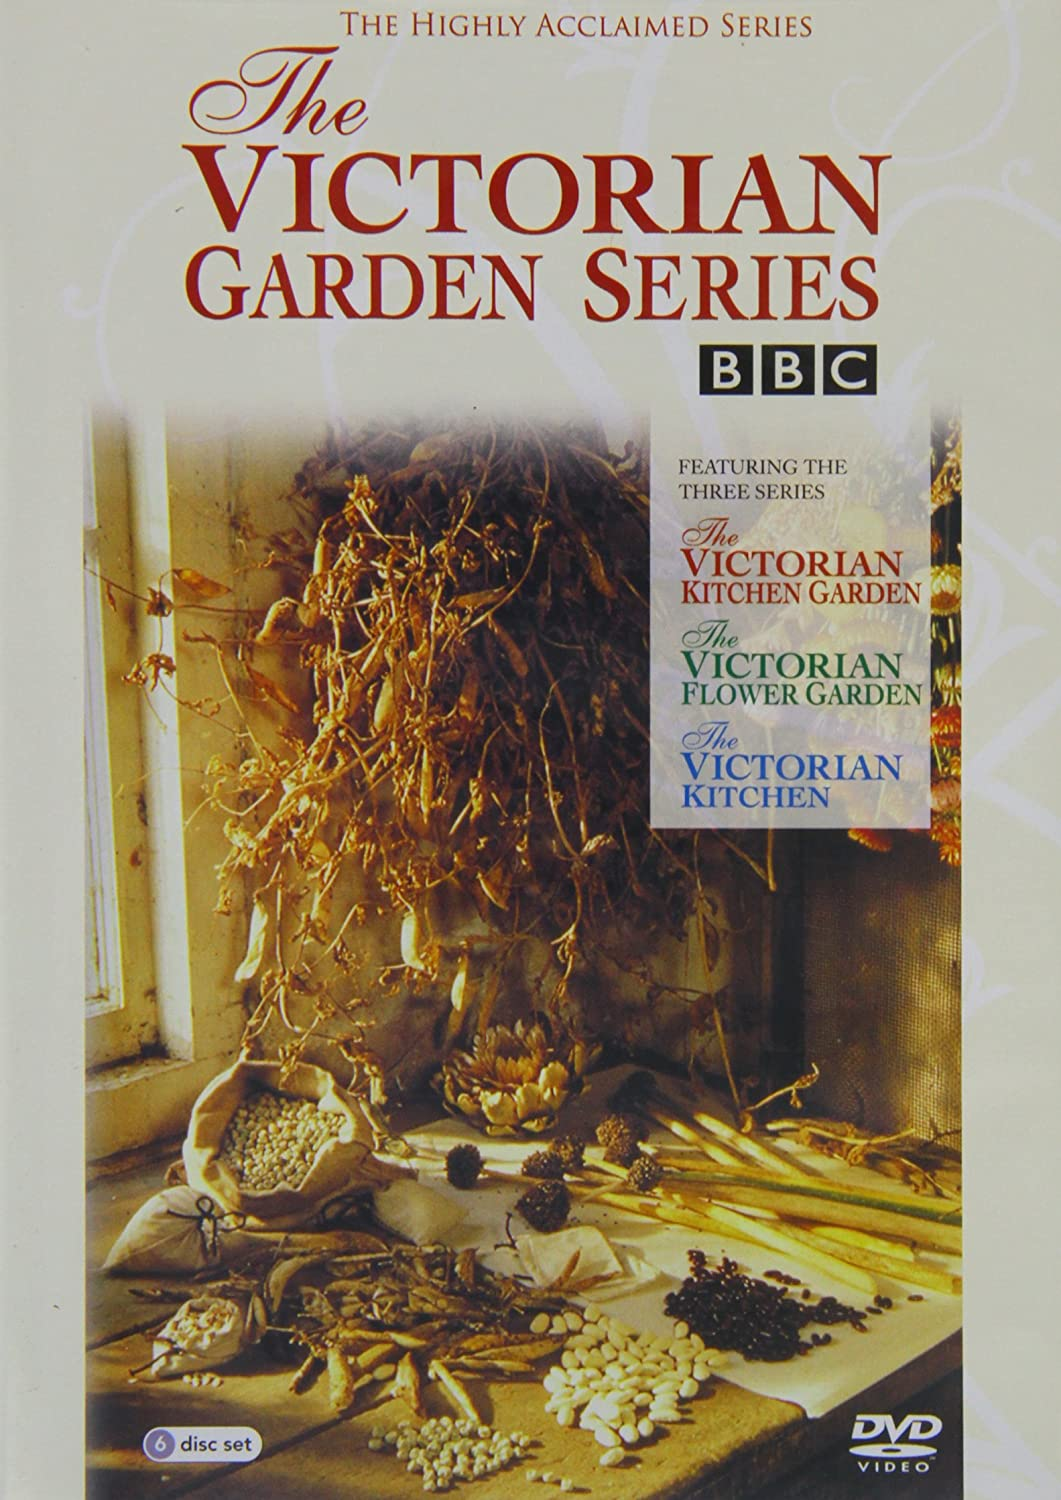 Victorian Kitchen Garden Dvd The Victorian Garden Series Dvd Amazoncouk Dvd Blu Ray